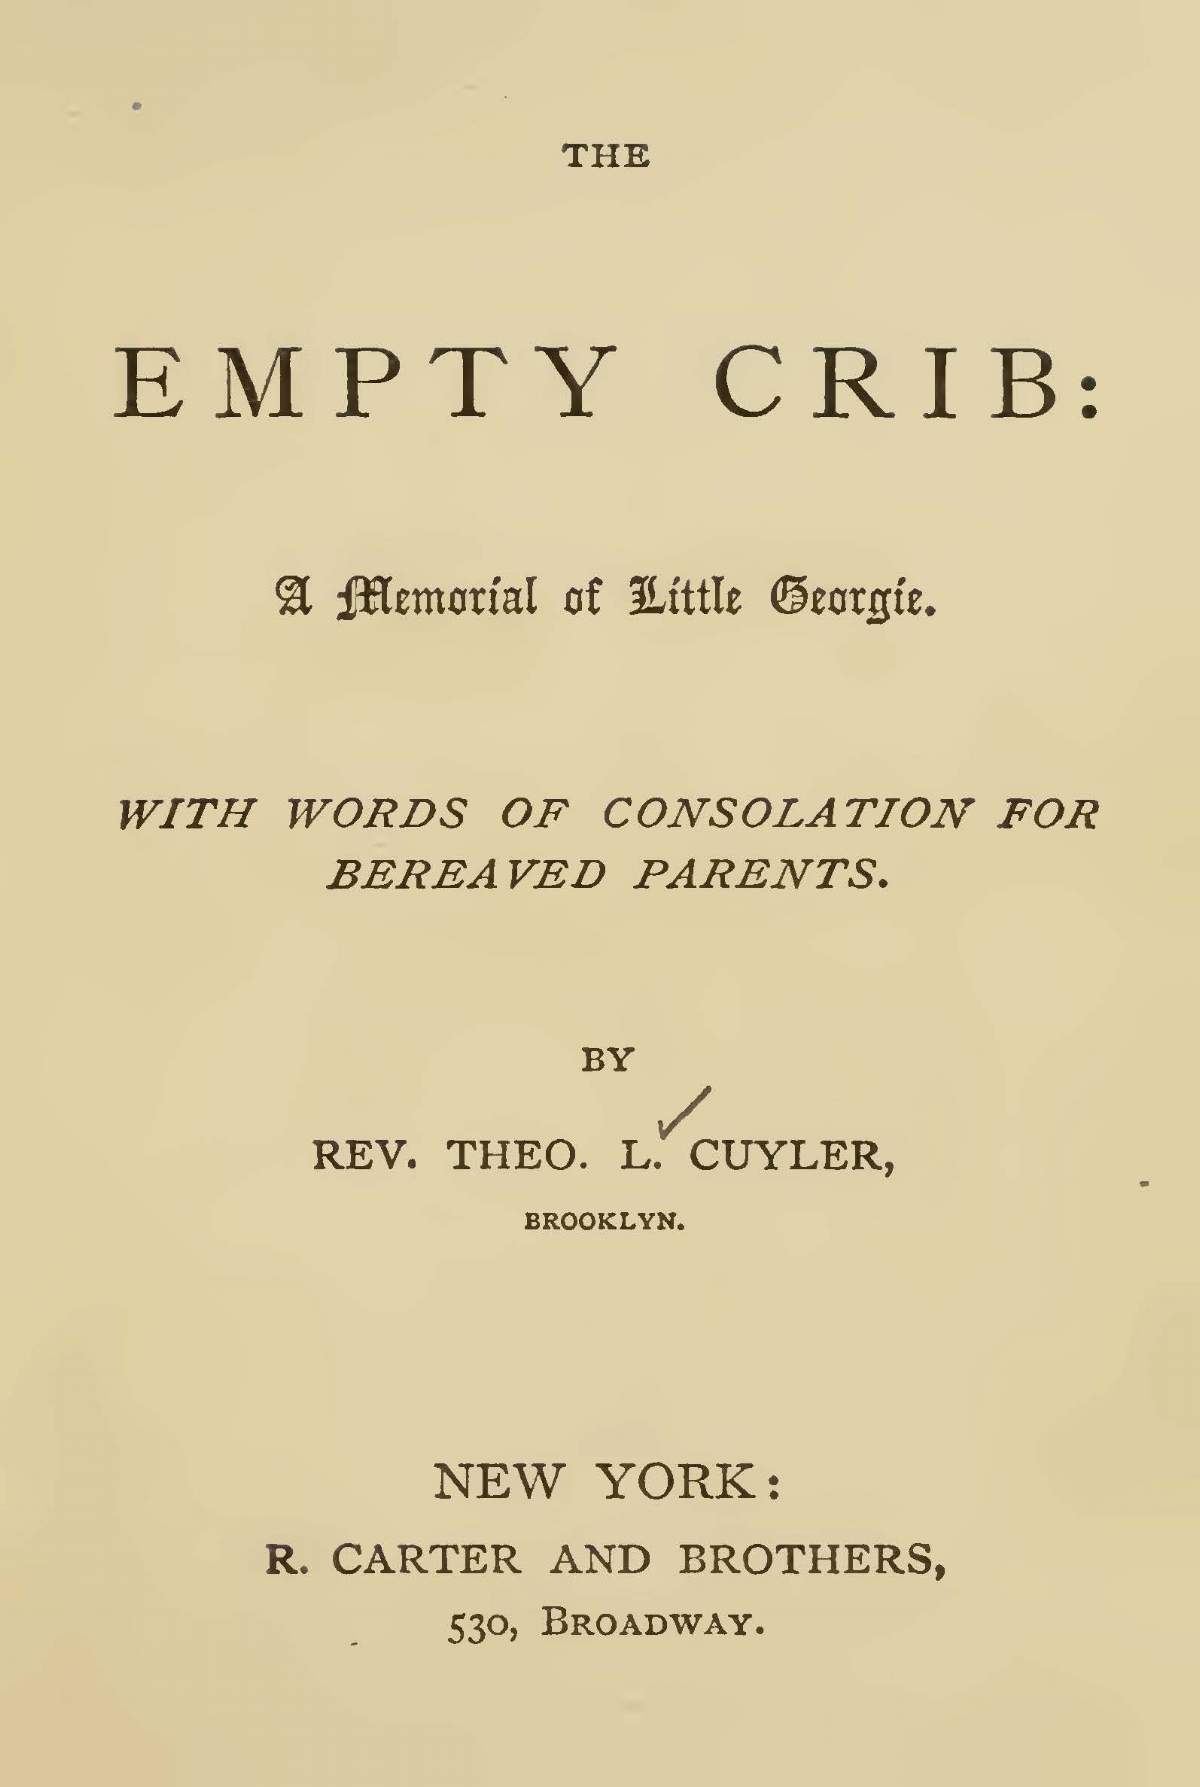 Cuyler, Theodore Ledyard, The Empty Crib Title Page.jpg